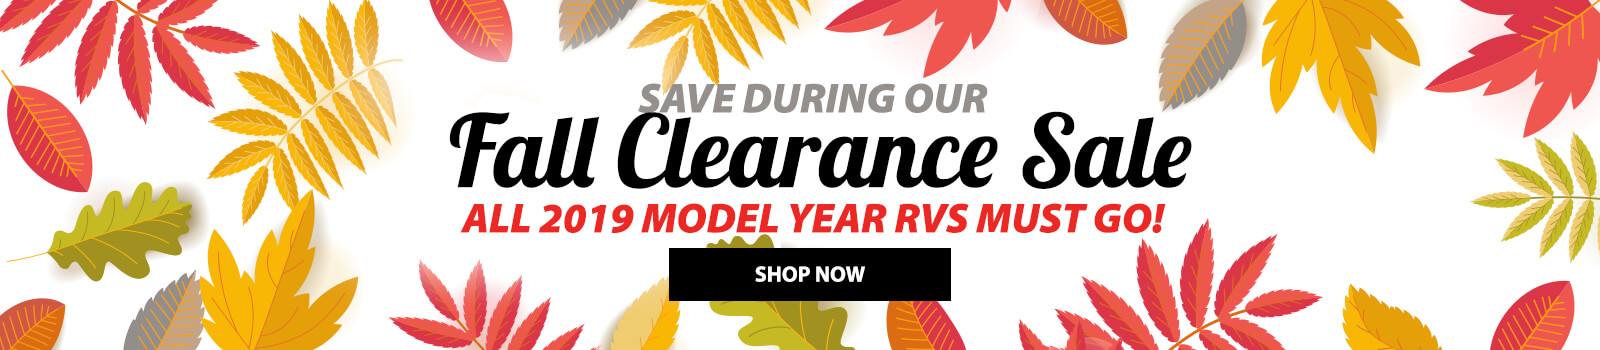 Fall Clearance Event